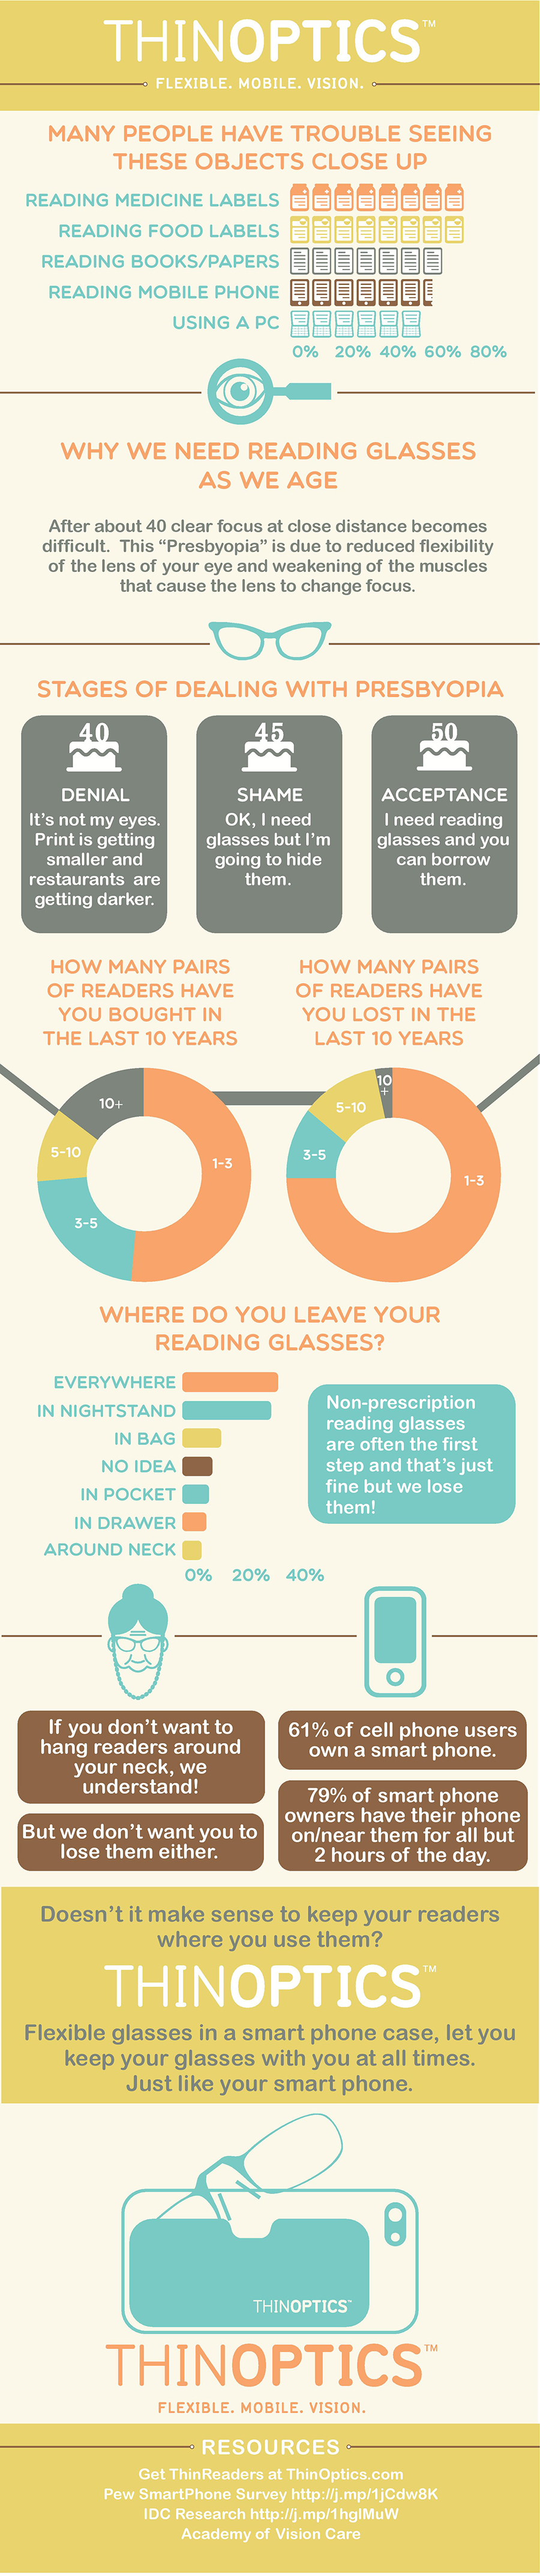 What Do You Mean I Need Reading Glasses? [Infographic